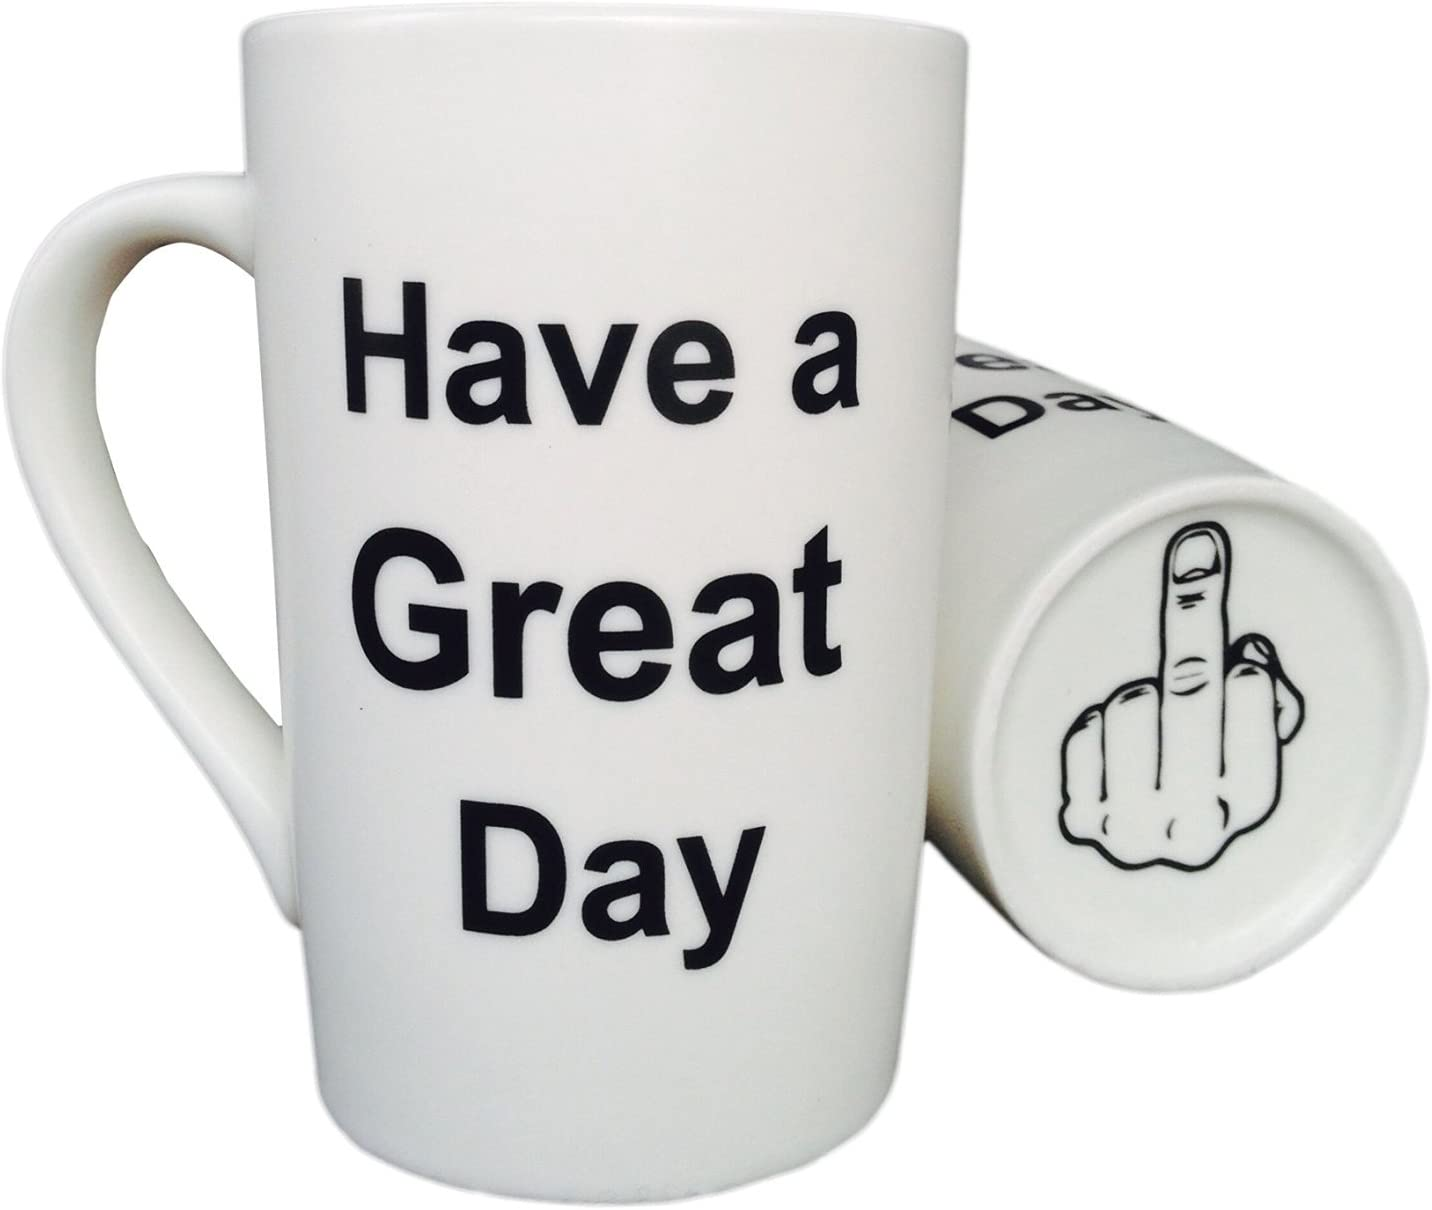 MAUAG Funny Christmas Gifts Coffee Mug Have a Great Day Family Gag Gifts Cup White, 12 Oz